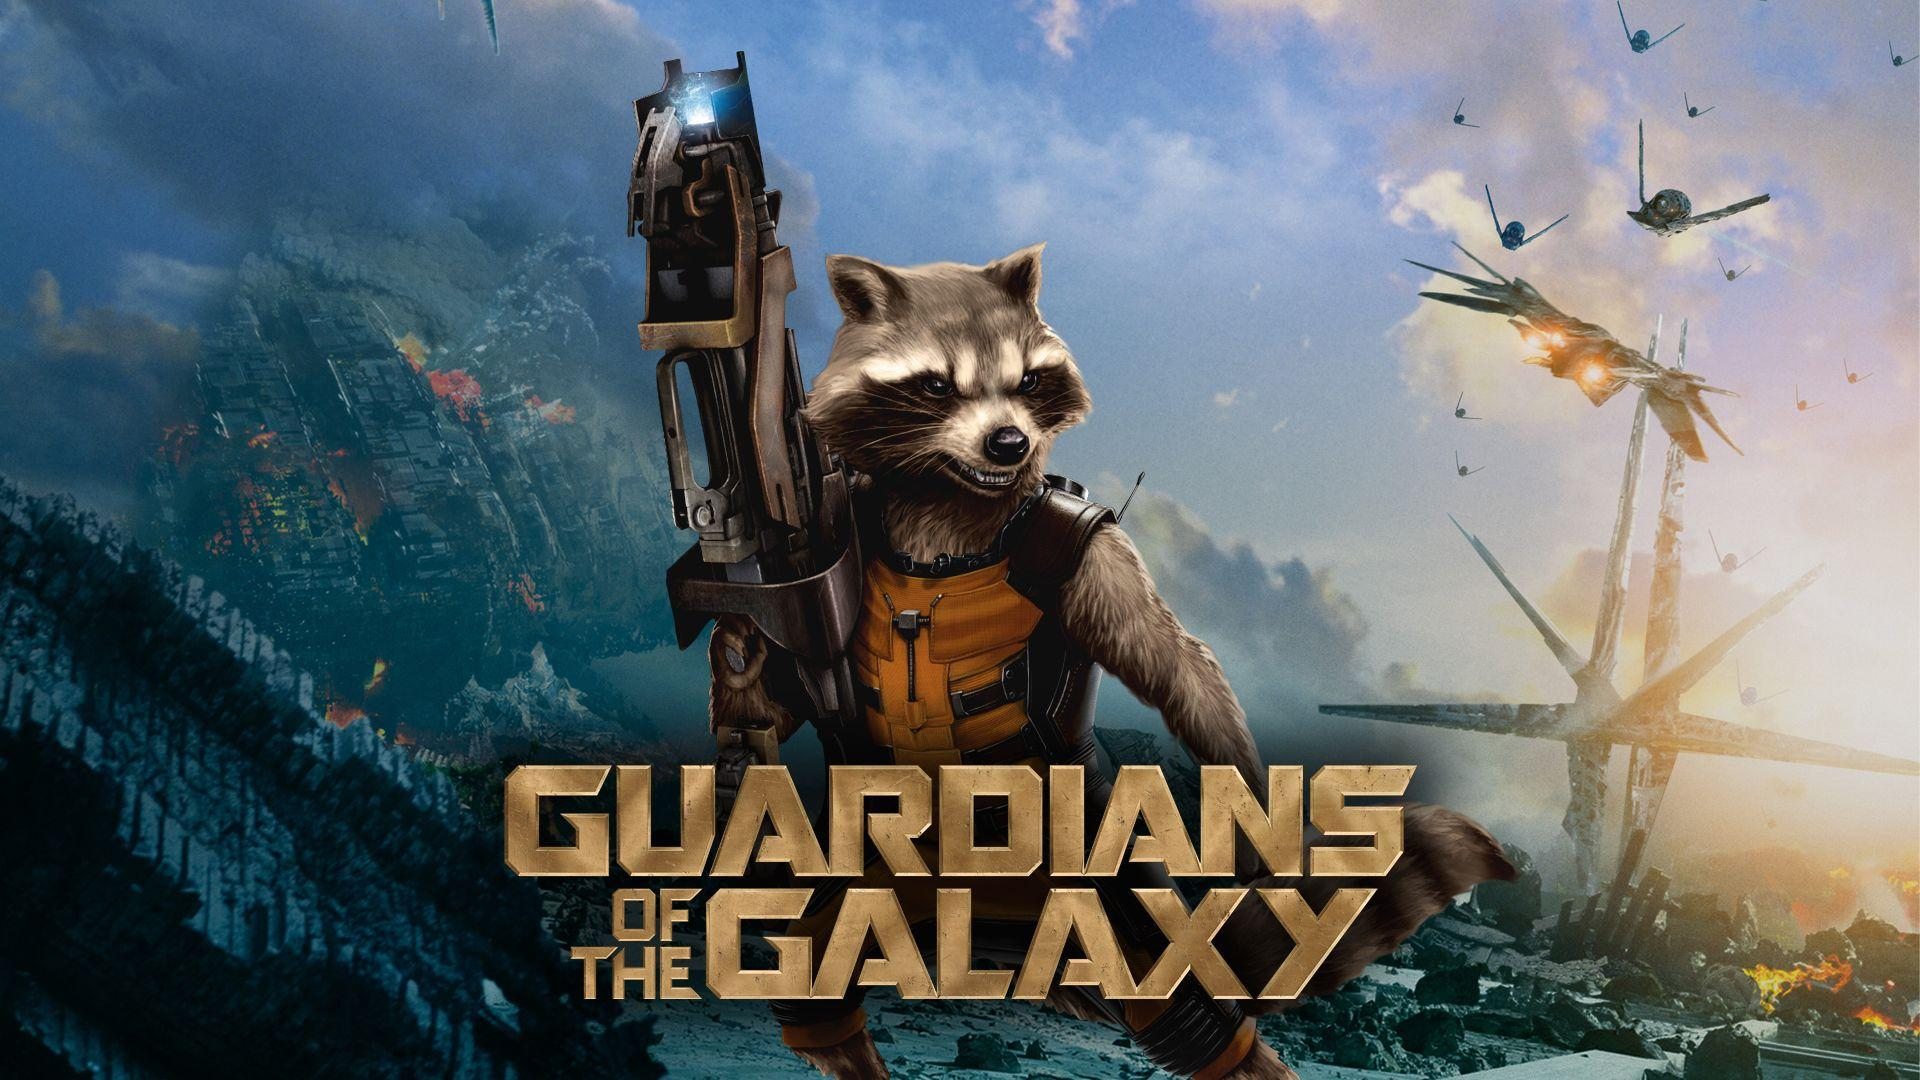 Download Wallpaper Movie Guardians The Galaxy - wp1815019  Graphic_735223.jpg